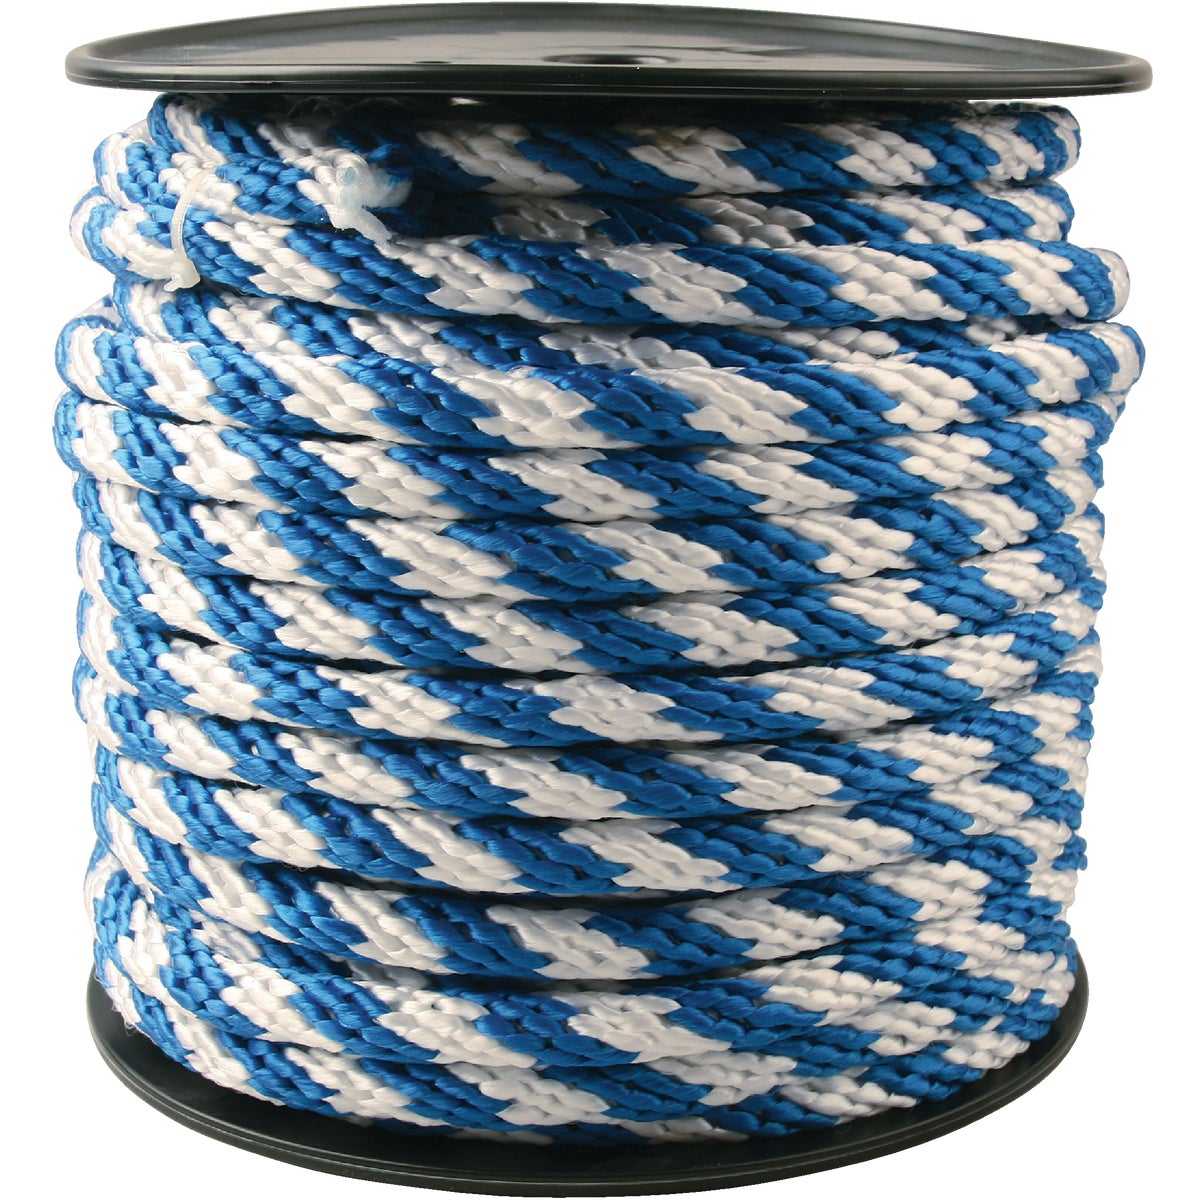 5/8X200'BLU/W DERBY ROPE - 737321 by Do it Best